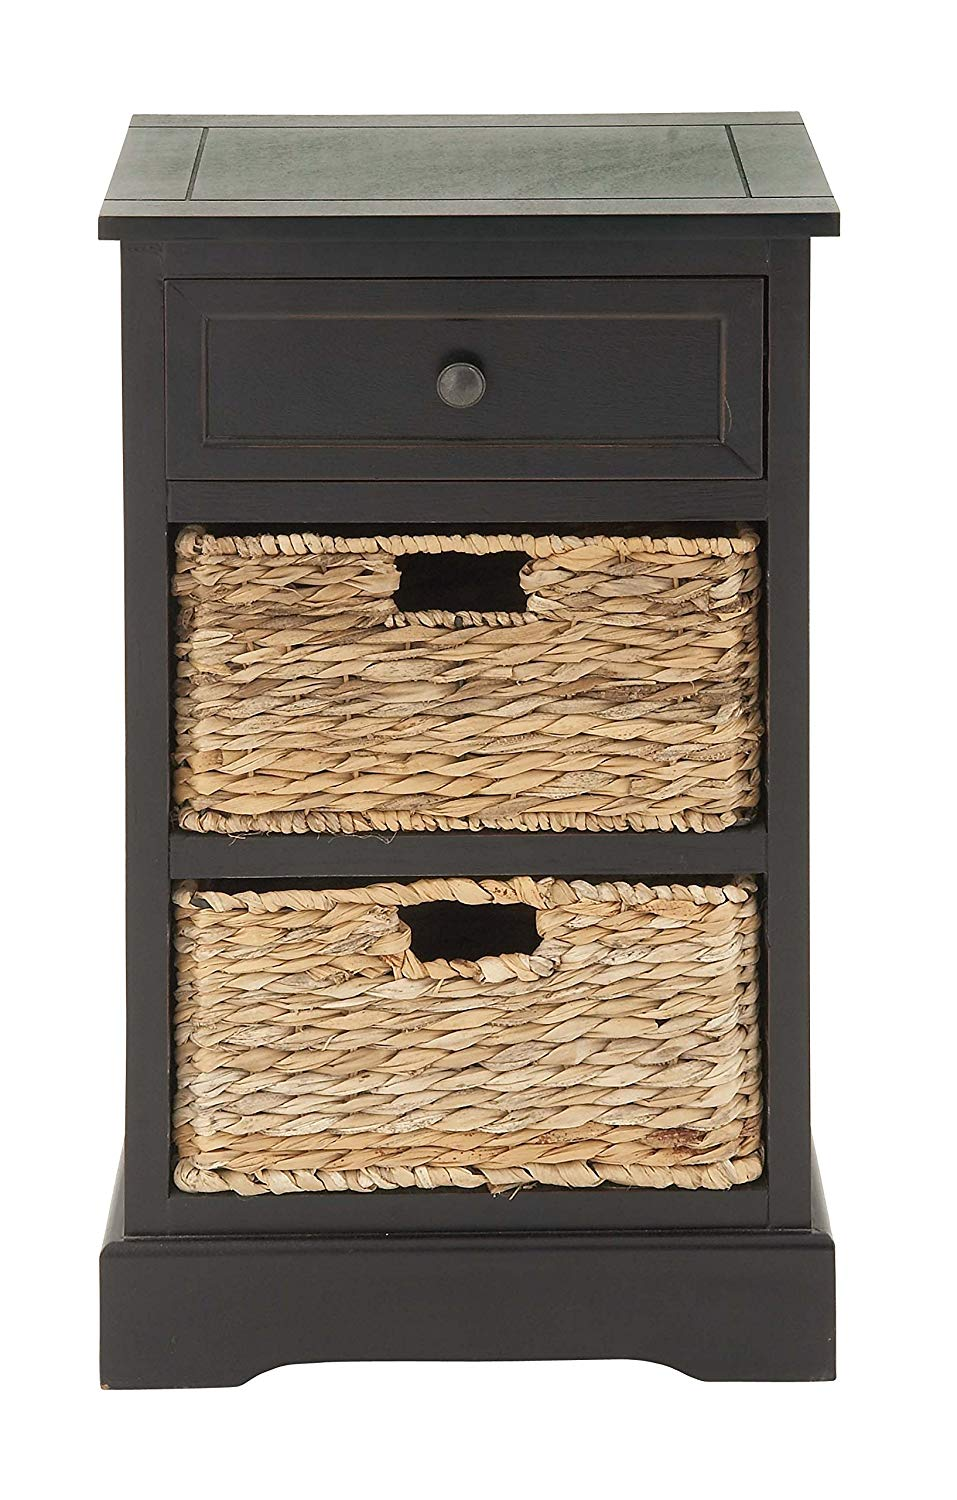 deco wood wicker basket side table foldable accent brown kitchen dining trestle top storage ott coffee ikea ethan allen lamps cast metal nate berkus dale tiffany mini inch square